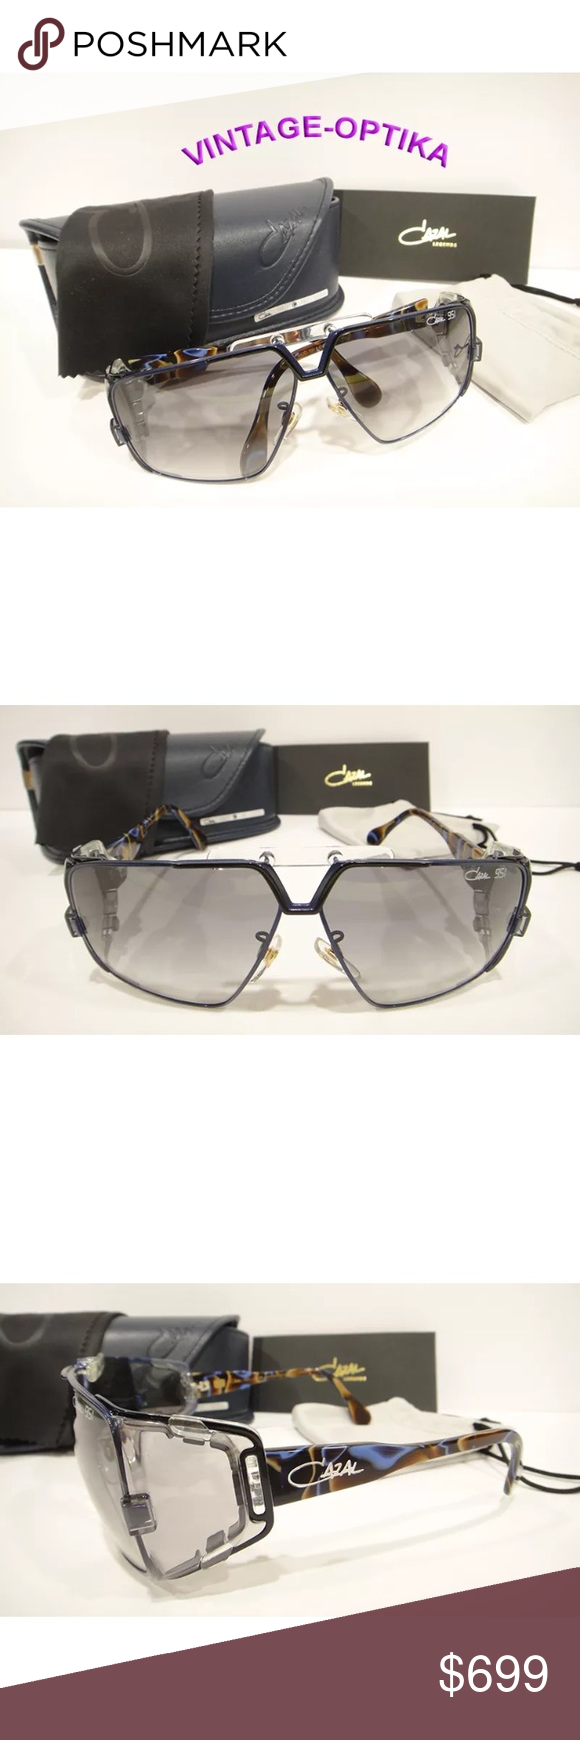 58efc5cbce CAZAL 951 Sunglasses ANNIVERSARY Edition 001 New These are 100% Genuine